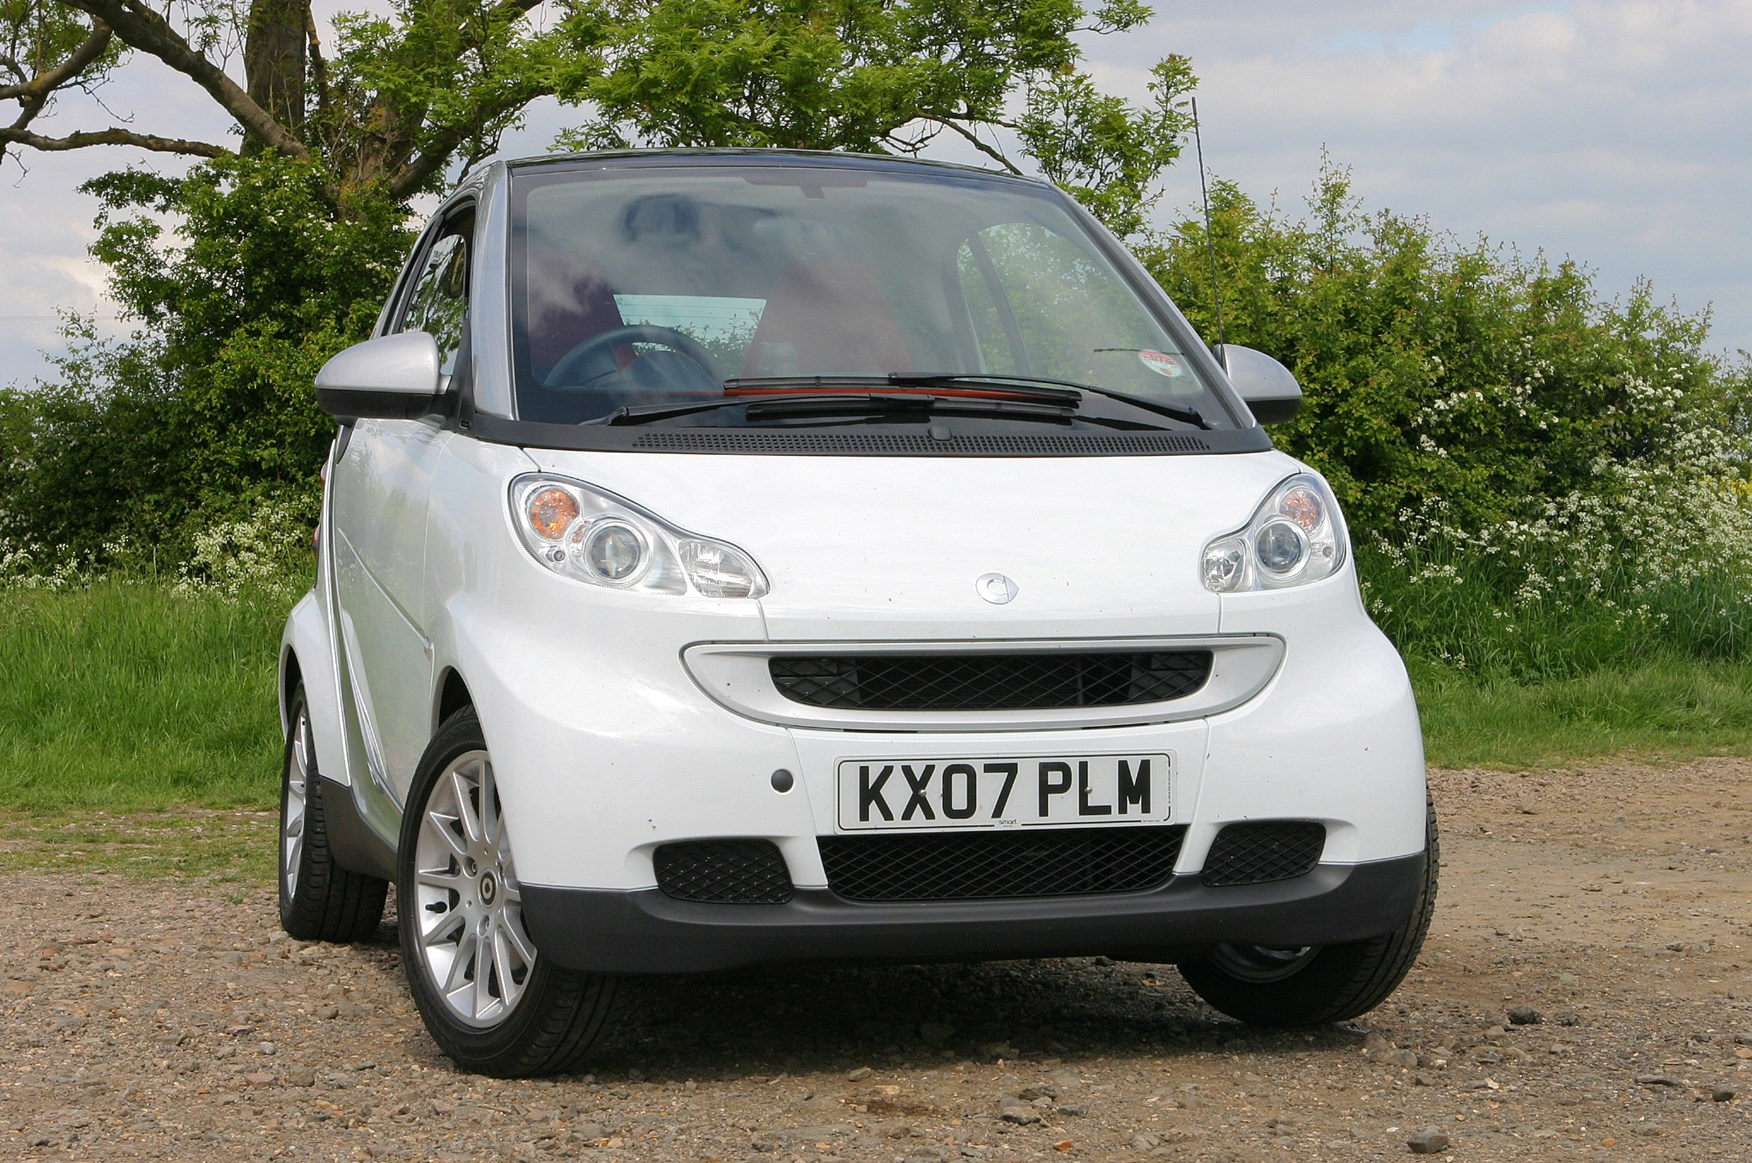 Smart Fortwo Coupe Review 2007 2014 Parkers Car 451 Fuse Box How Much Is It To Insure